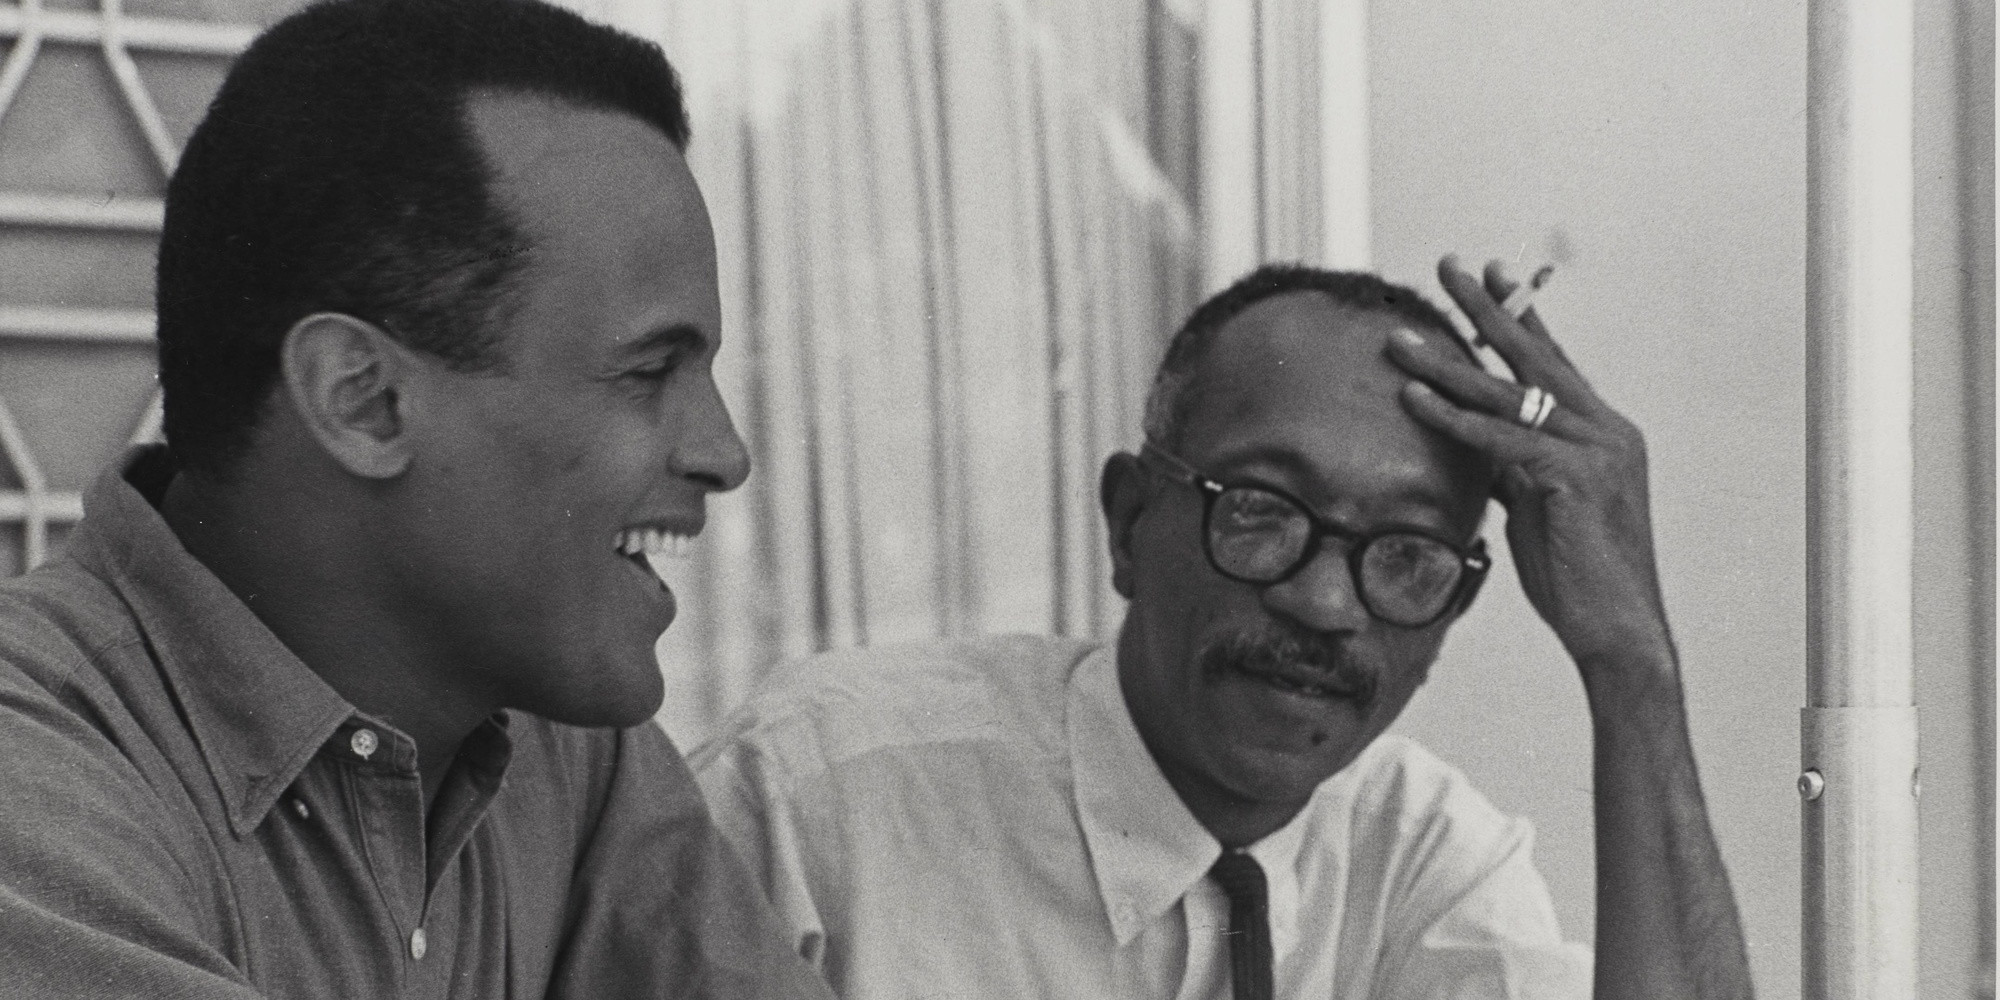 Charles White and Harry Belafonte working on Songs Belafonte Sings. c. 1960. Black-and-white photograph. © The Charles White Archives